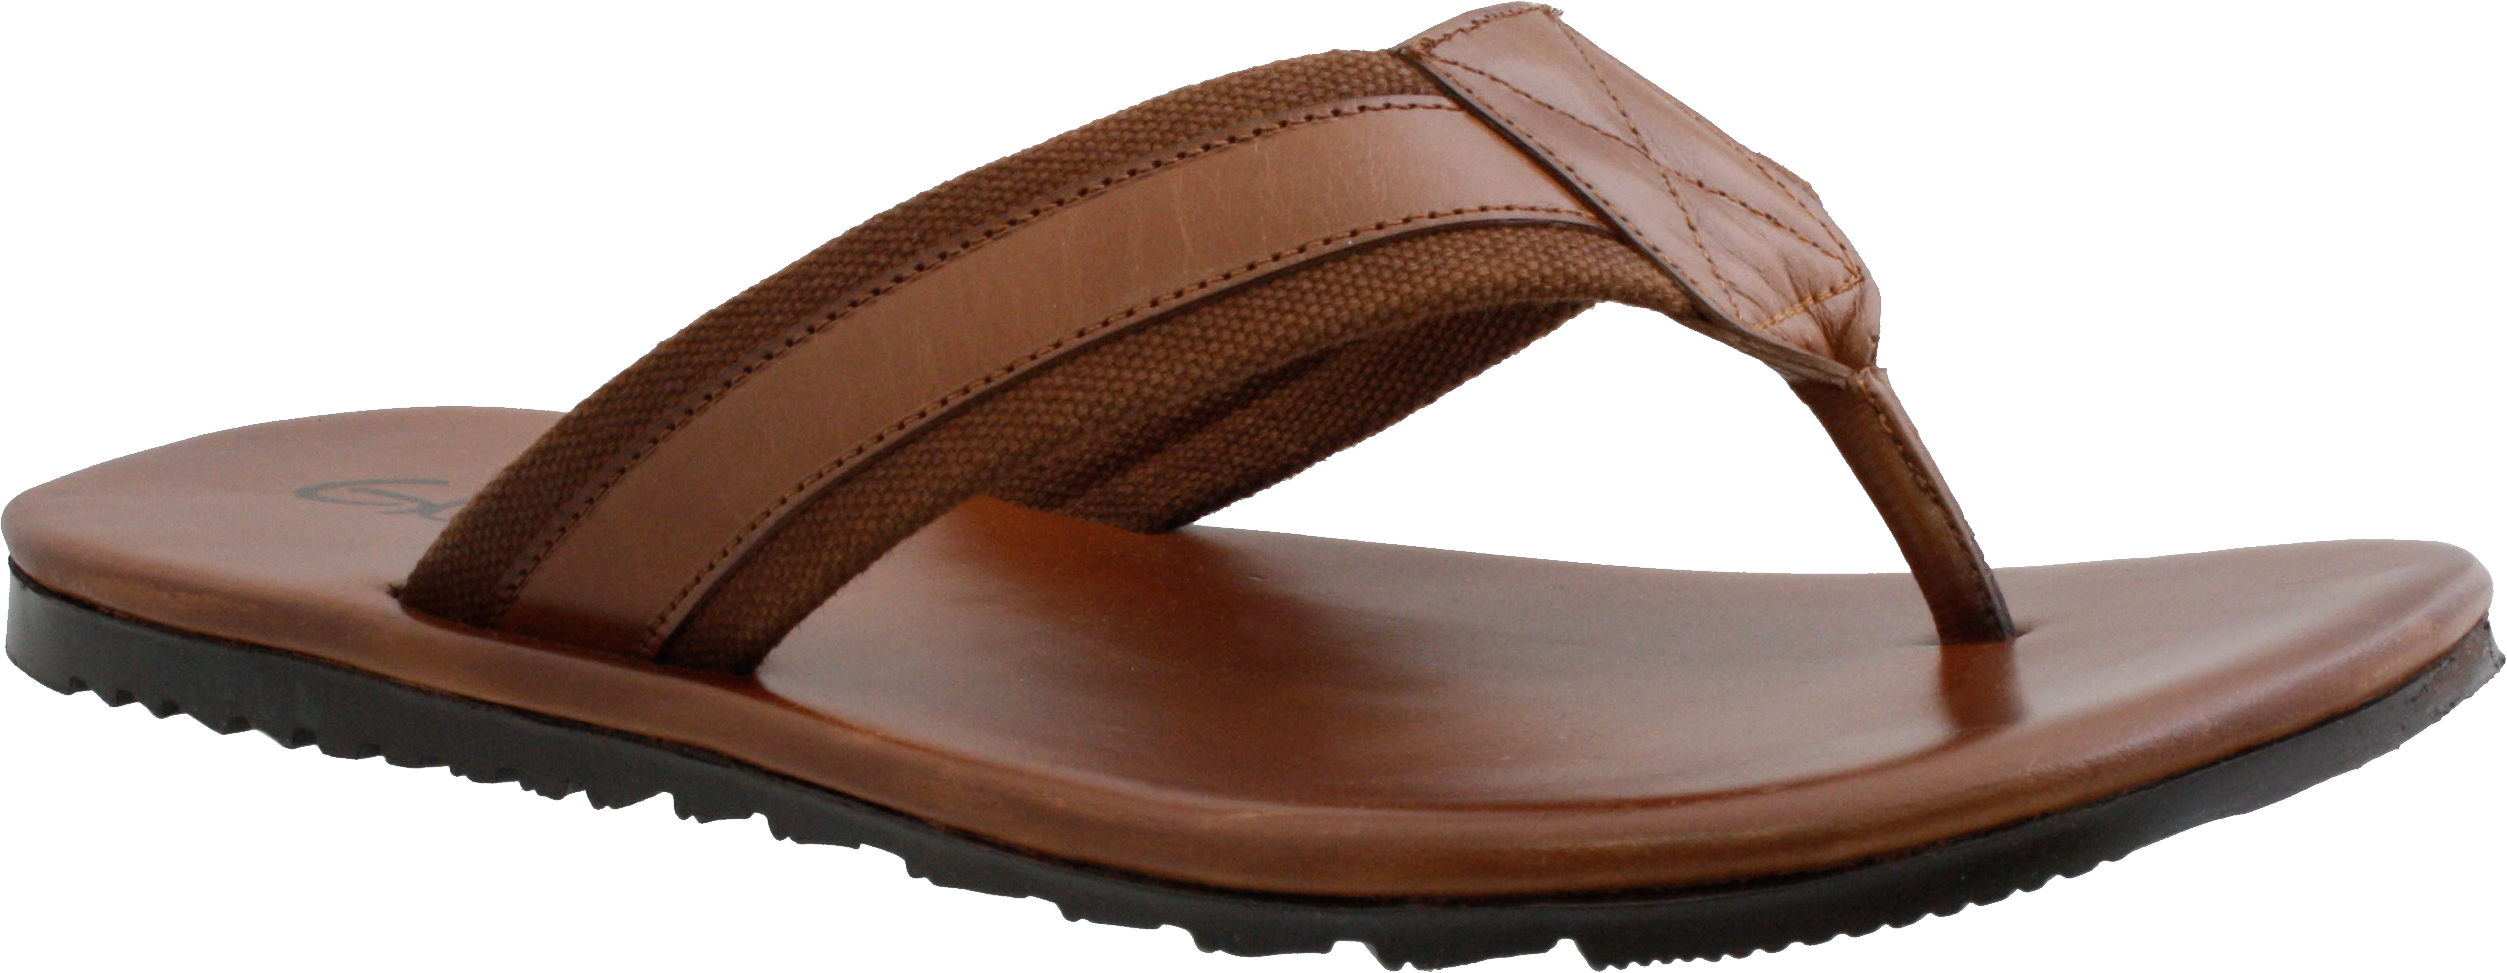 Sandal  Men's Chocolate PNG Image